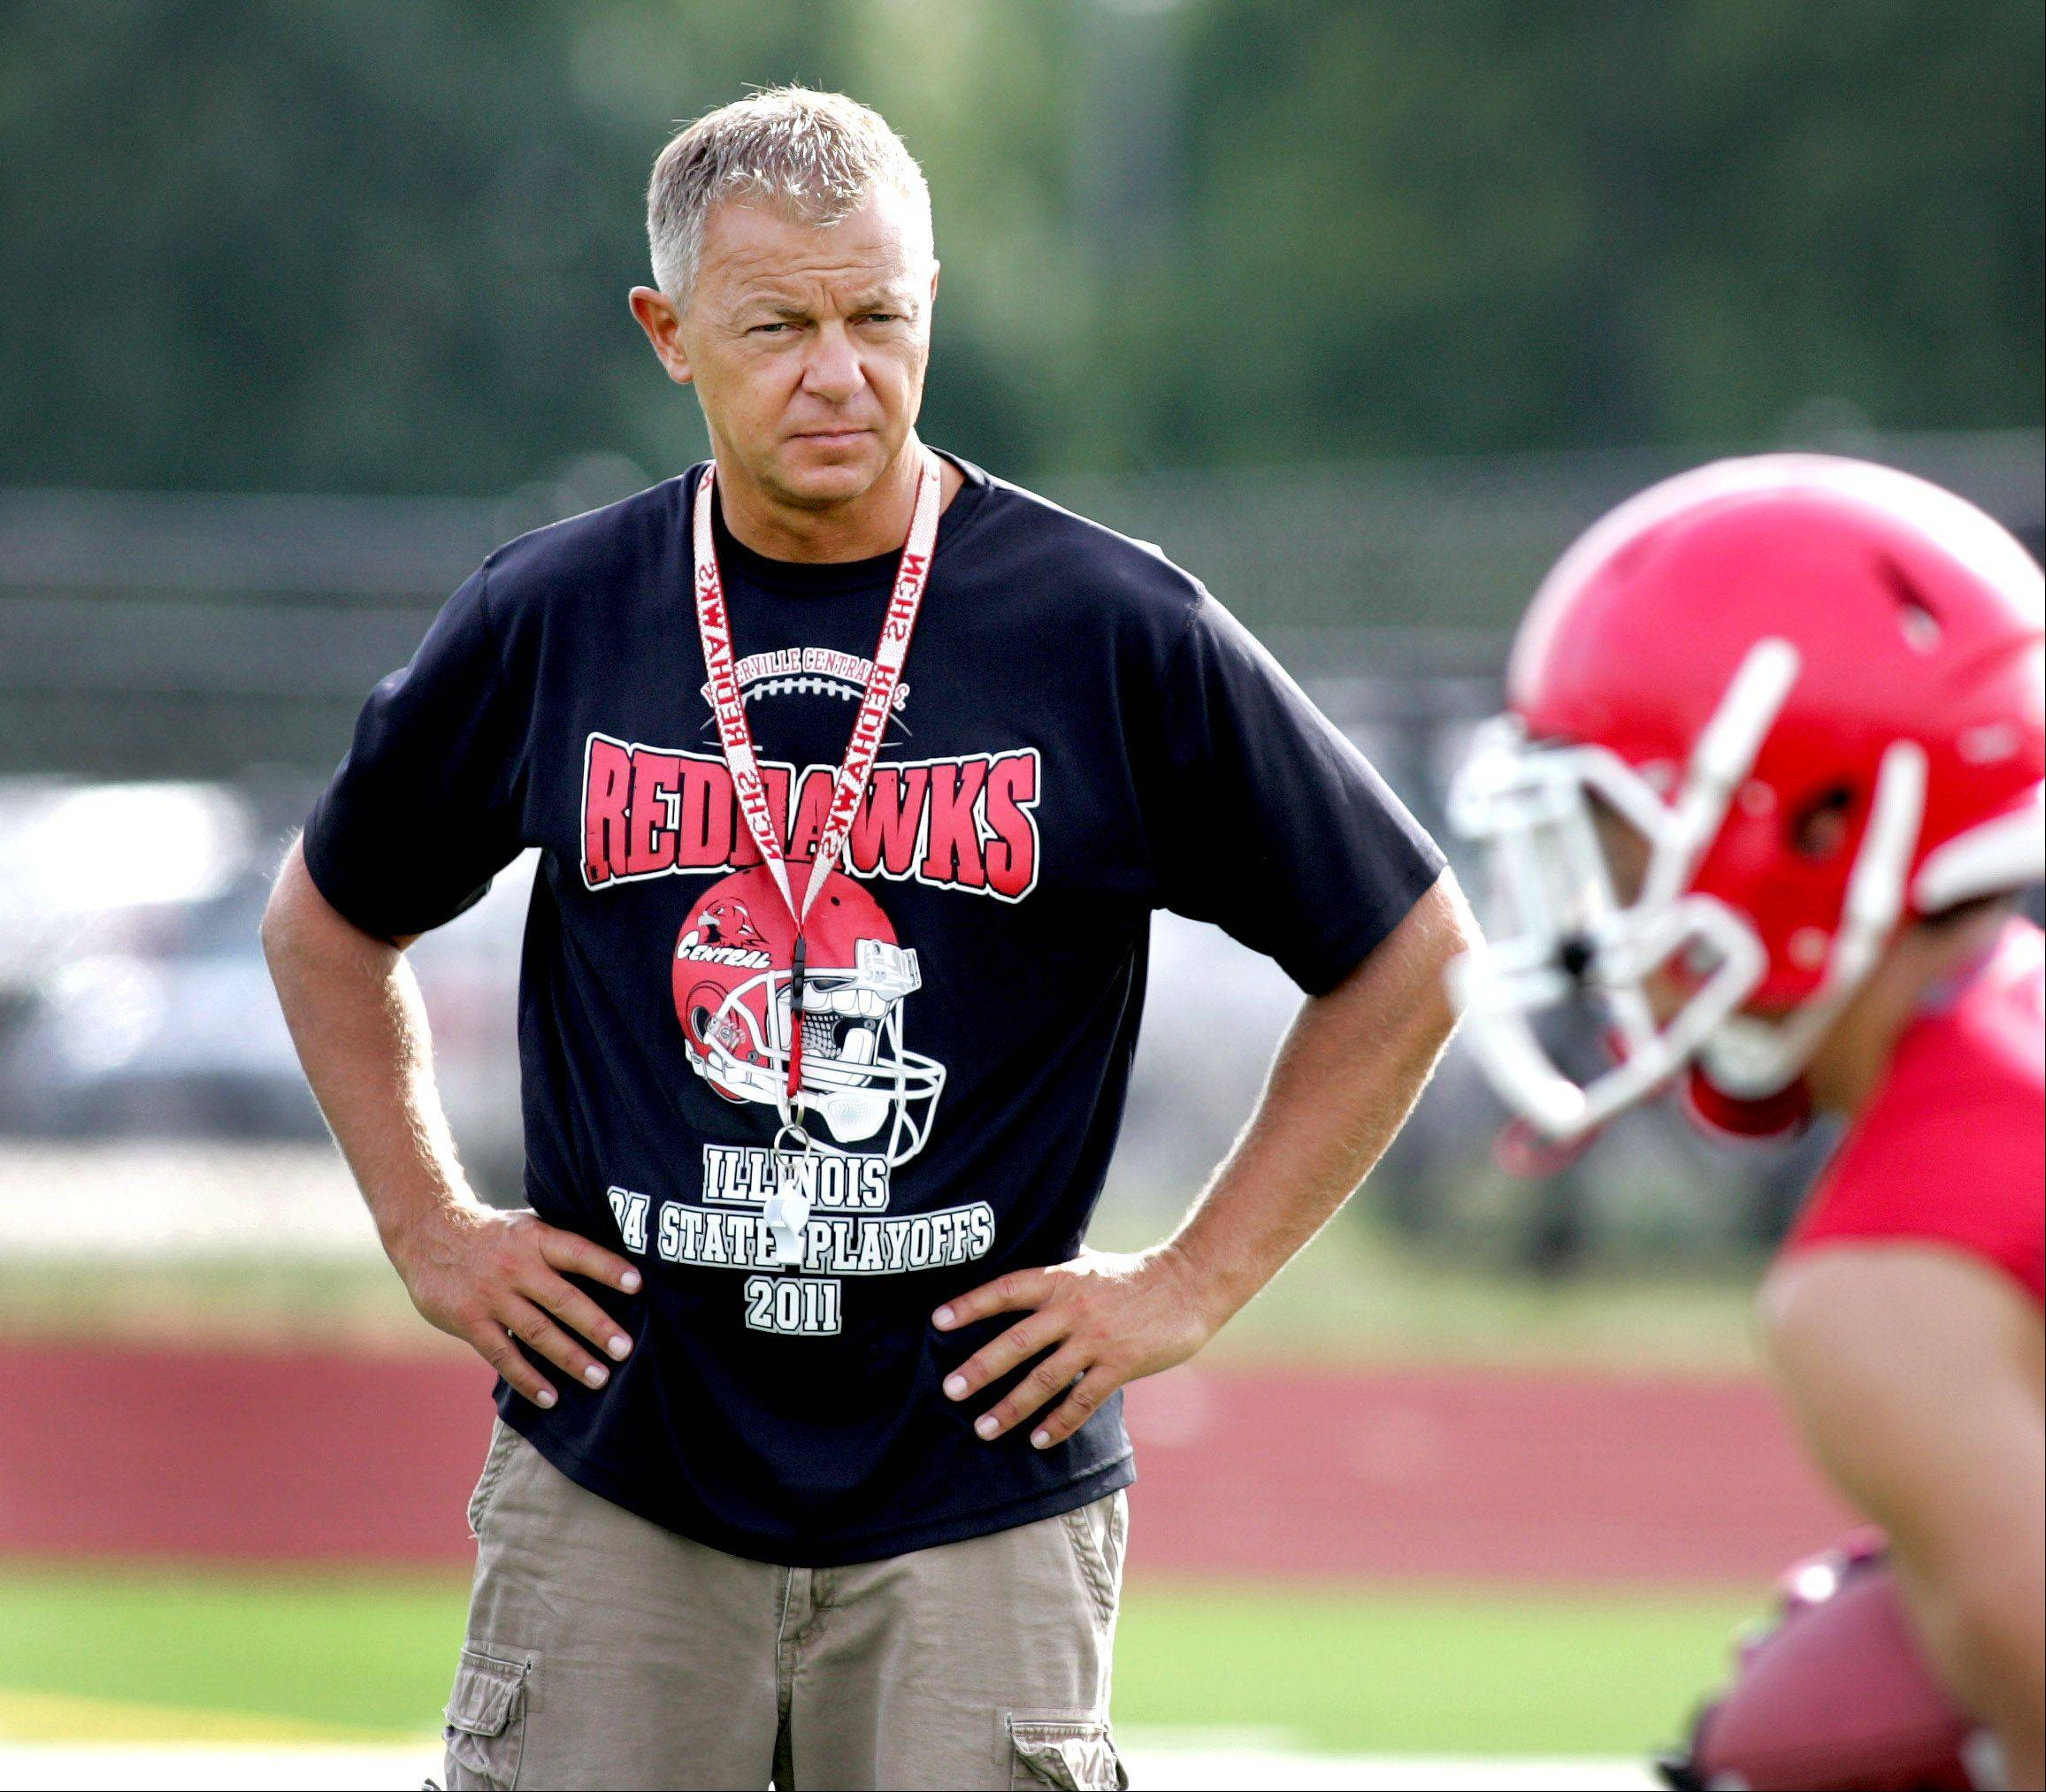 Coach Mike Stine watches practice at Naperville Central High School on Wednesday.